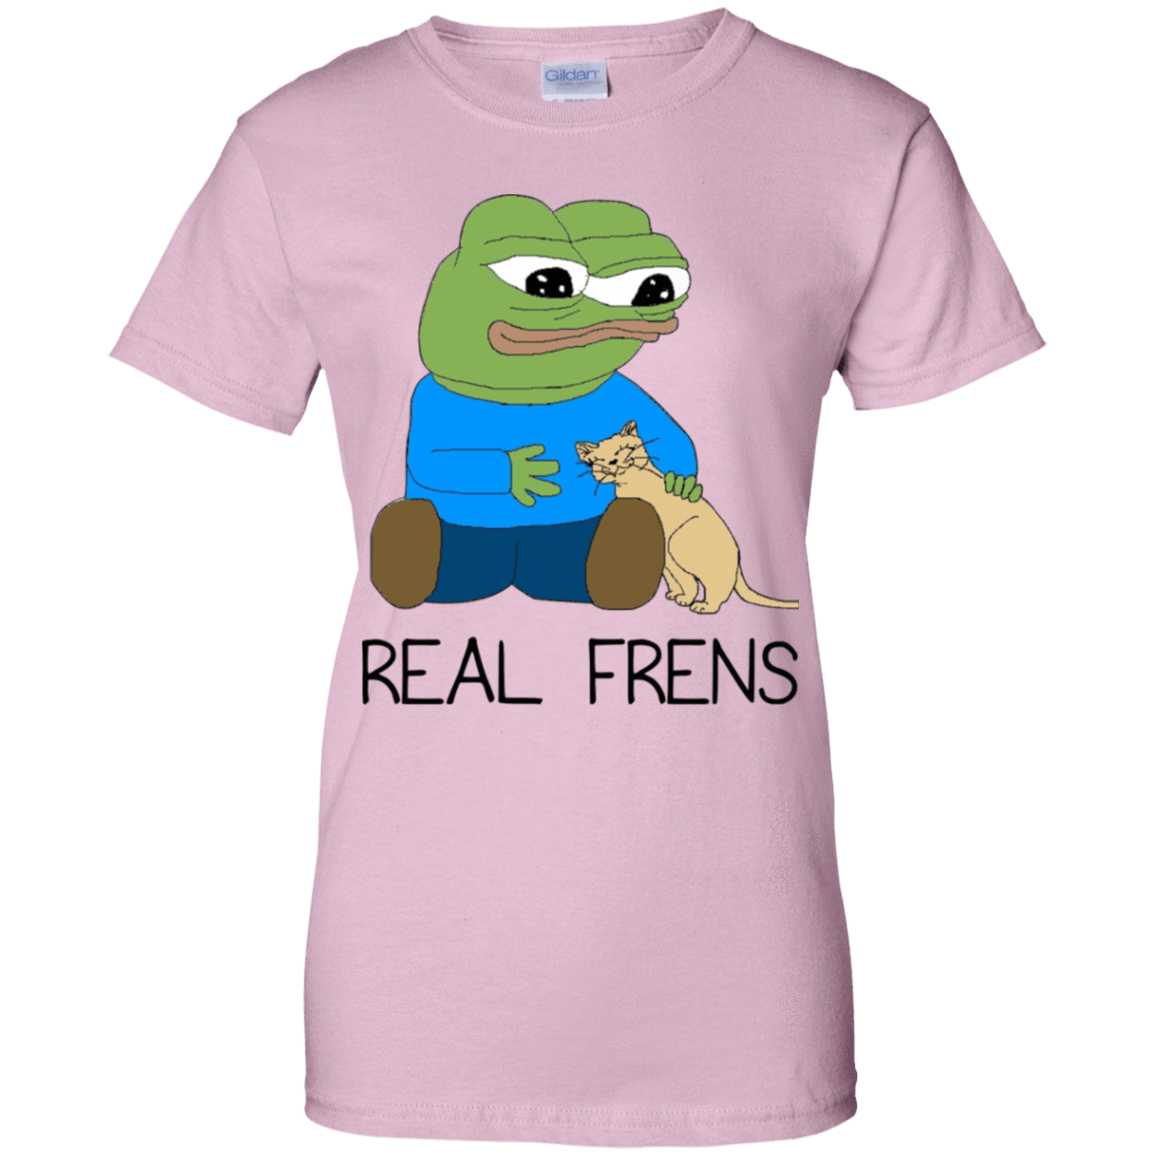 Real Frens 939-9258-73889417-44786 - Tee Ript